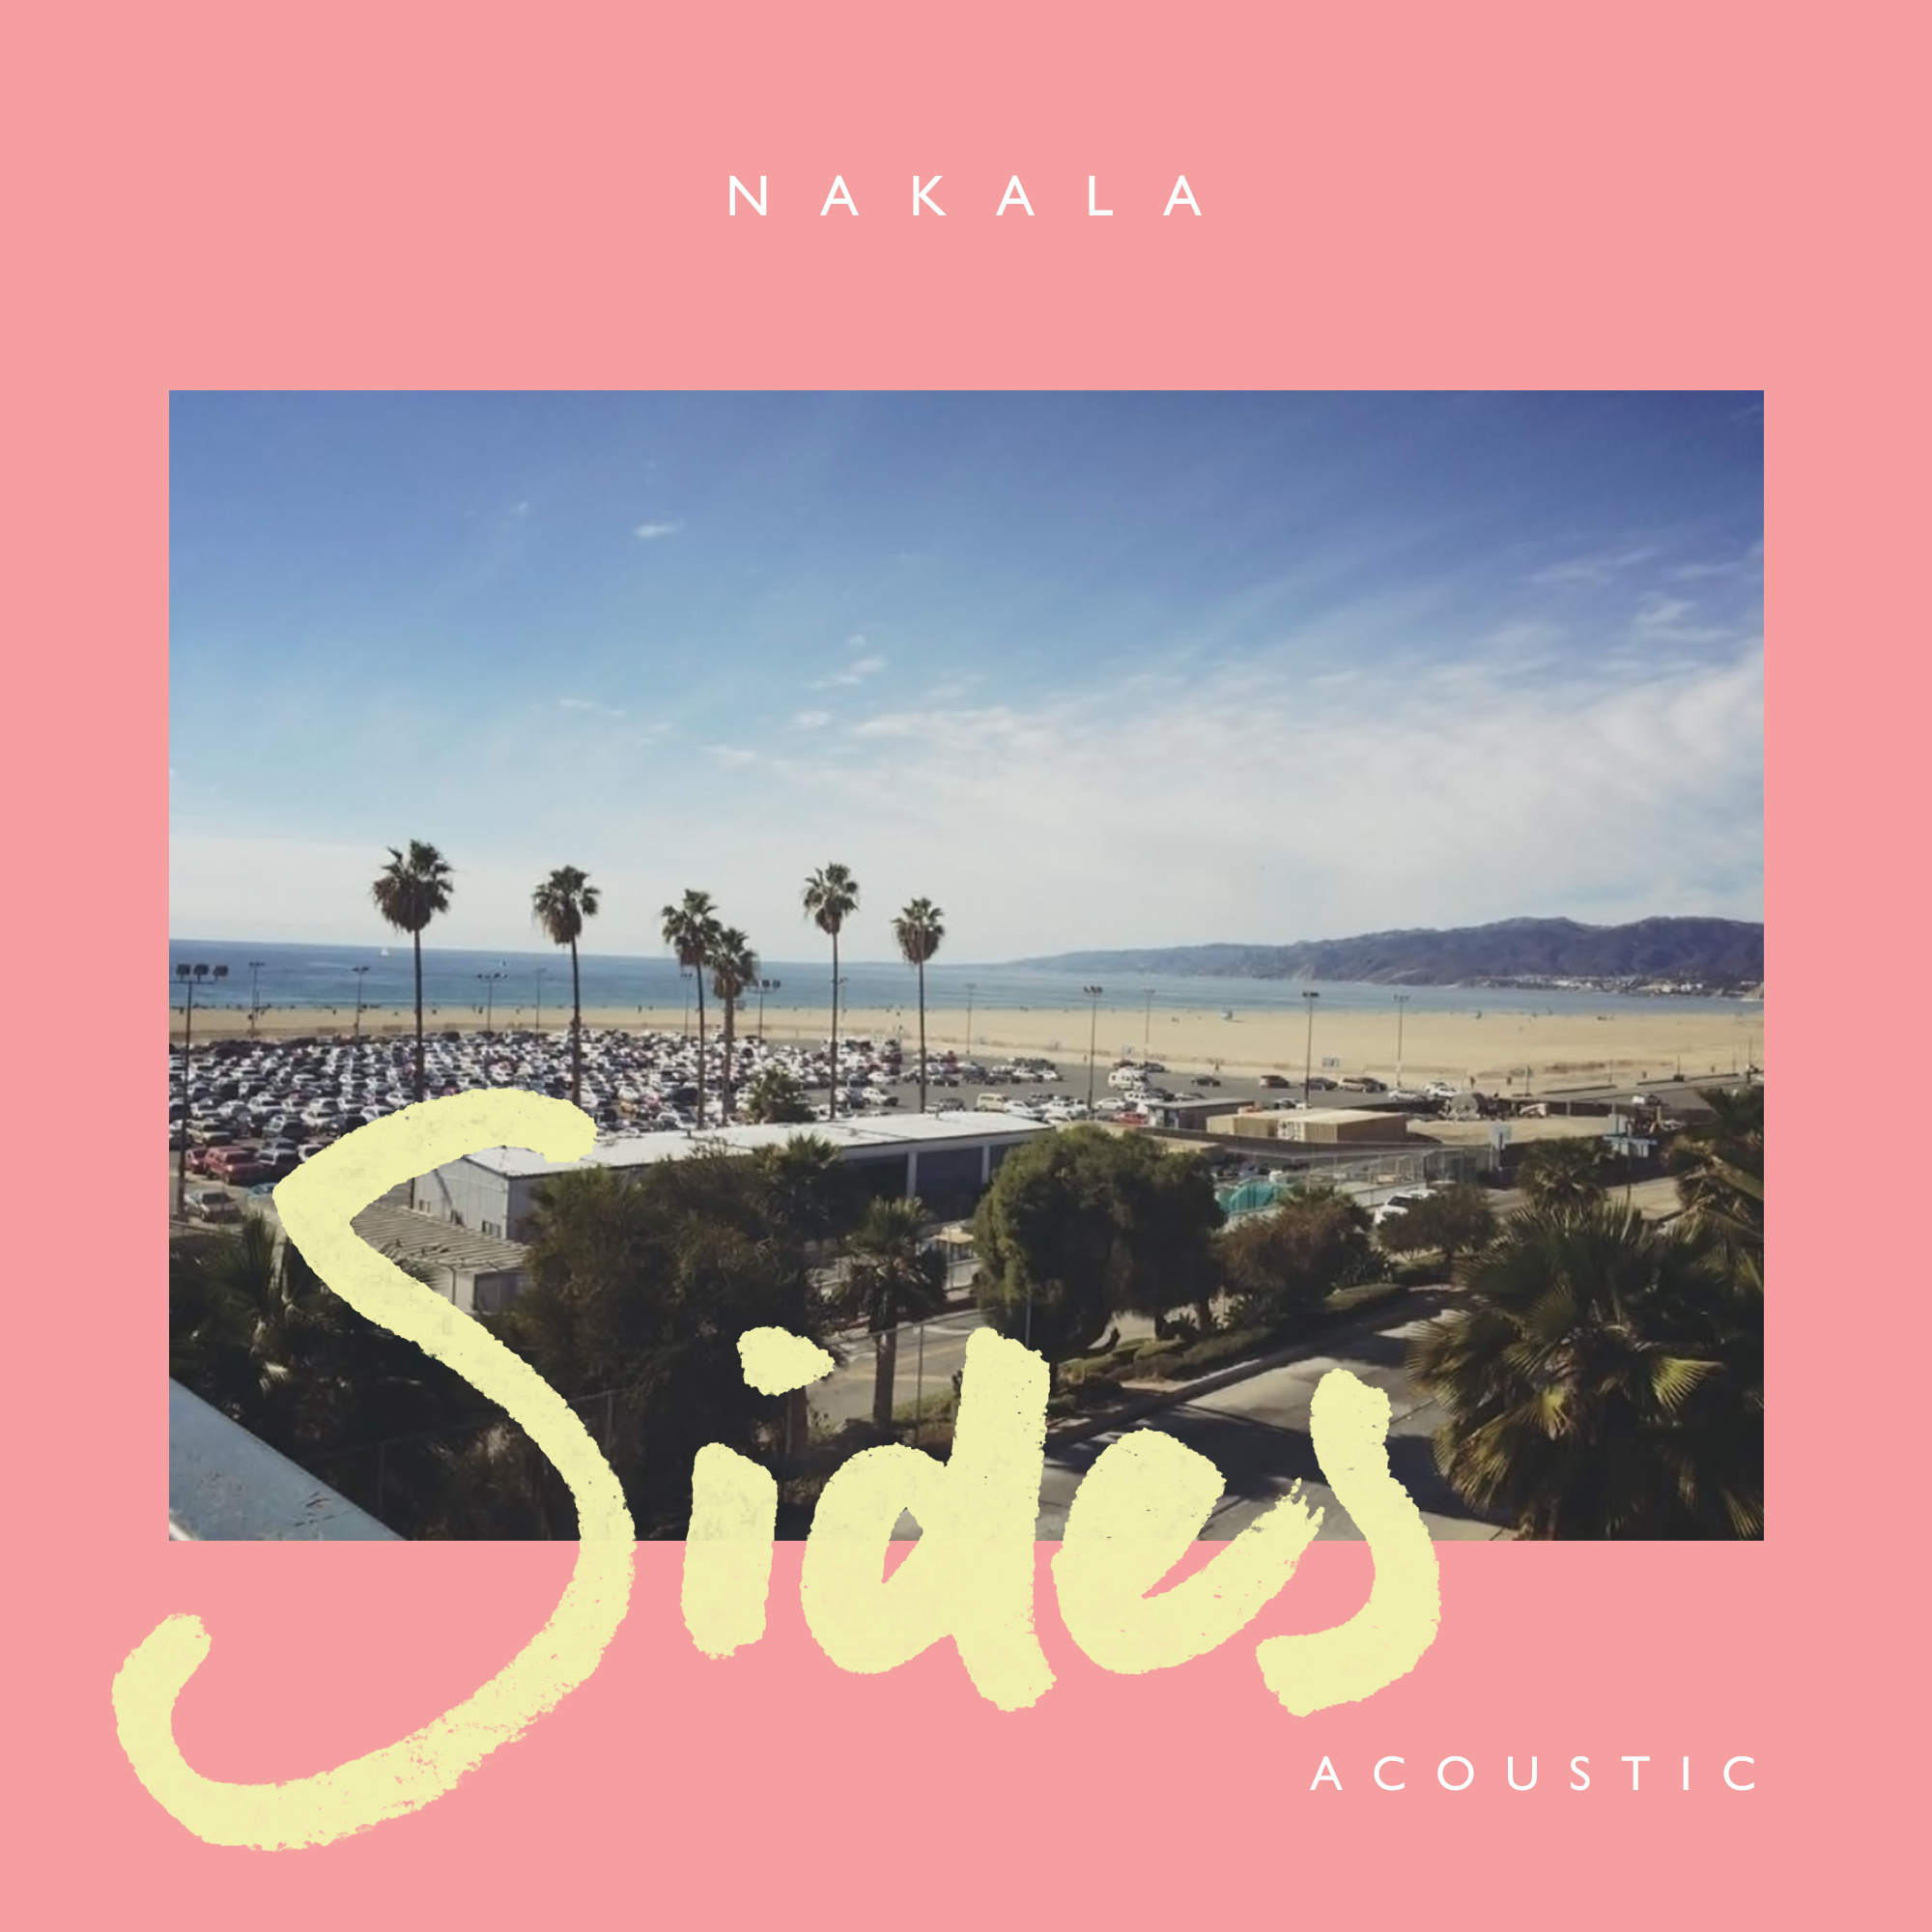 nakala sides acostic artwork sample 1.png